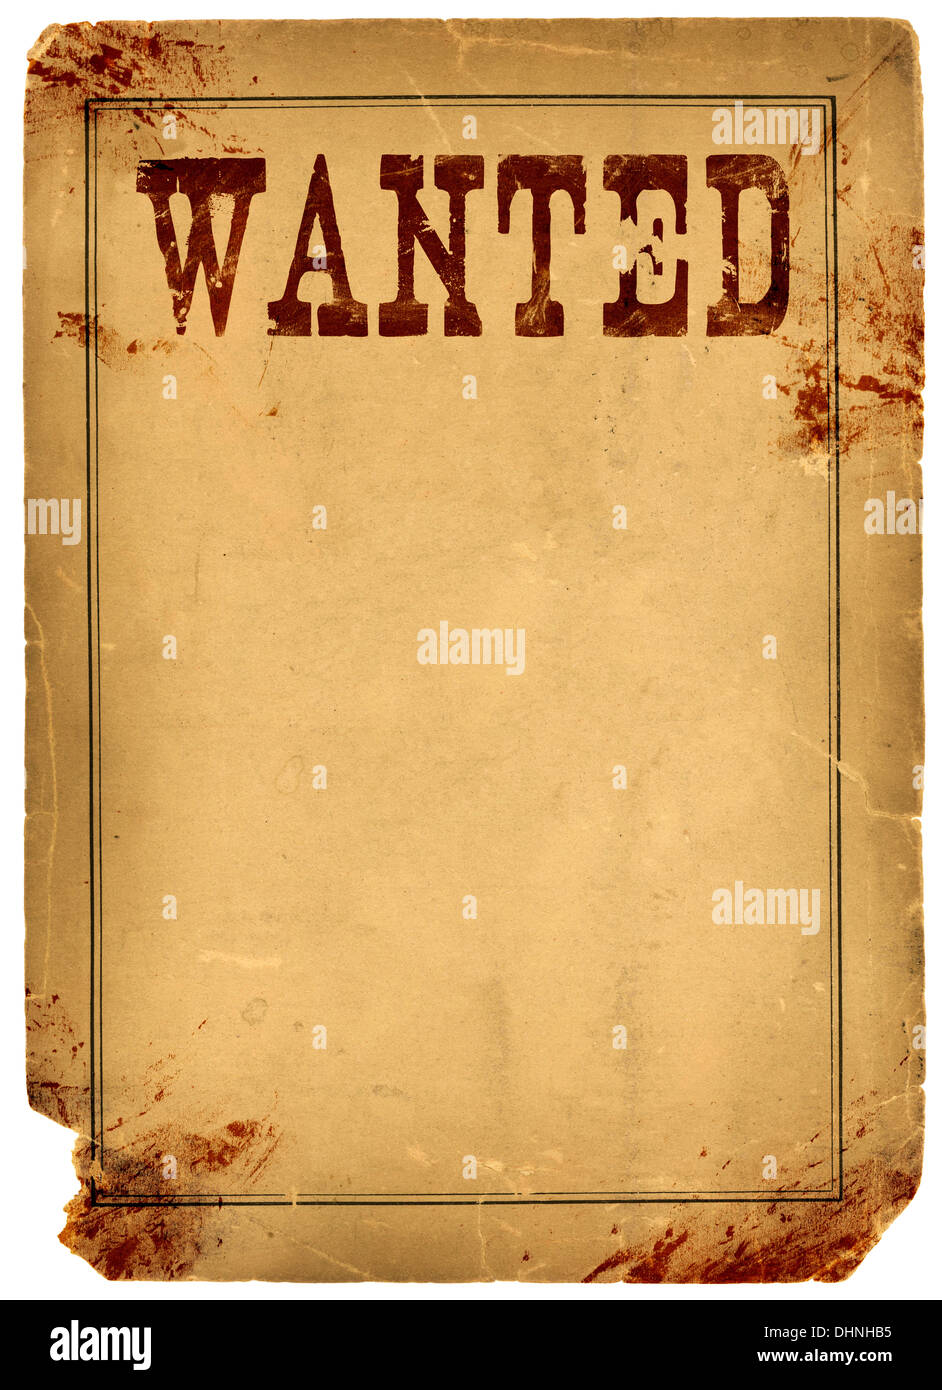 bloody stained old western wanted poster made from real